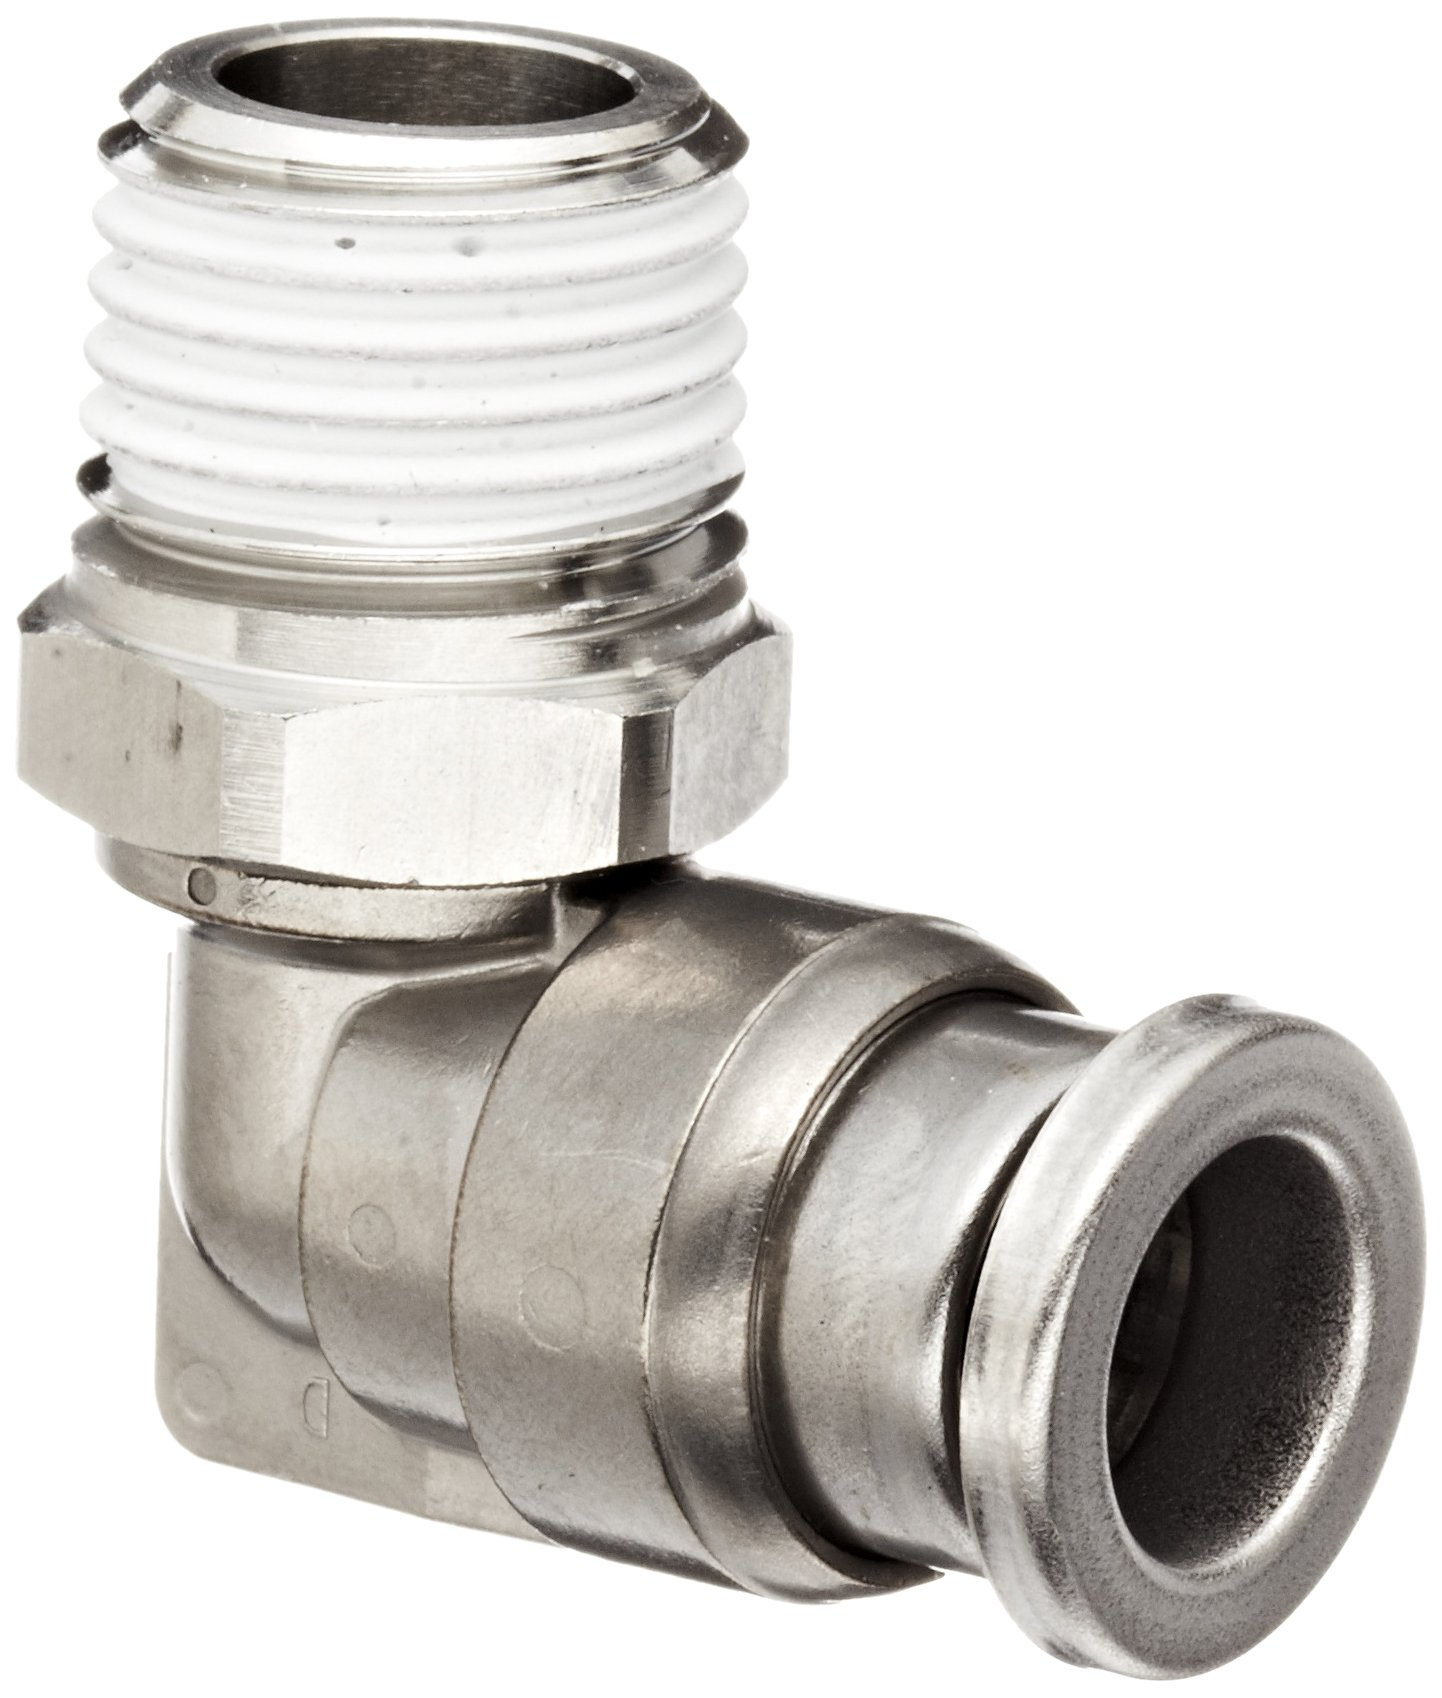 SMC KQG2 Series Stainless Steel 316 Push-to-Connect Tube Fitting, 90 Degree Elbow with Sealant, 8mm Tube OD x 1/4'' BSPT Male